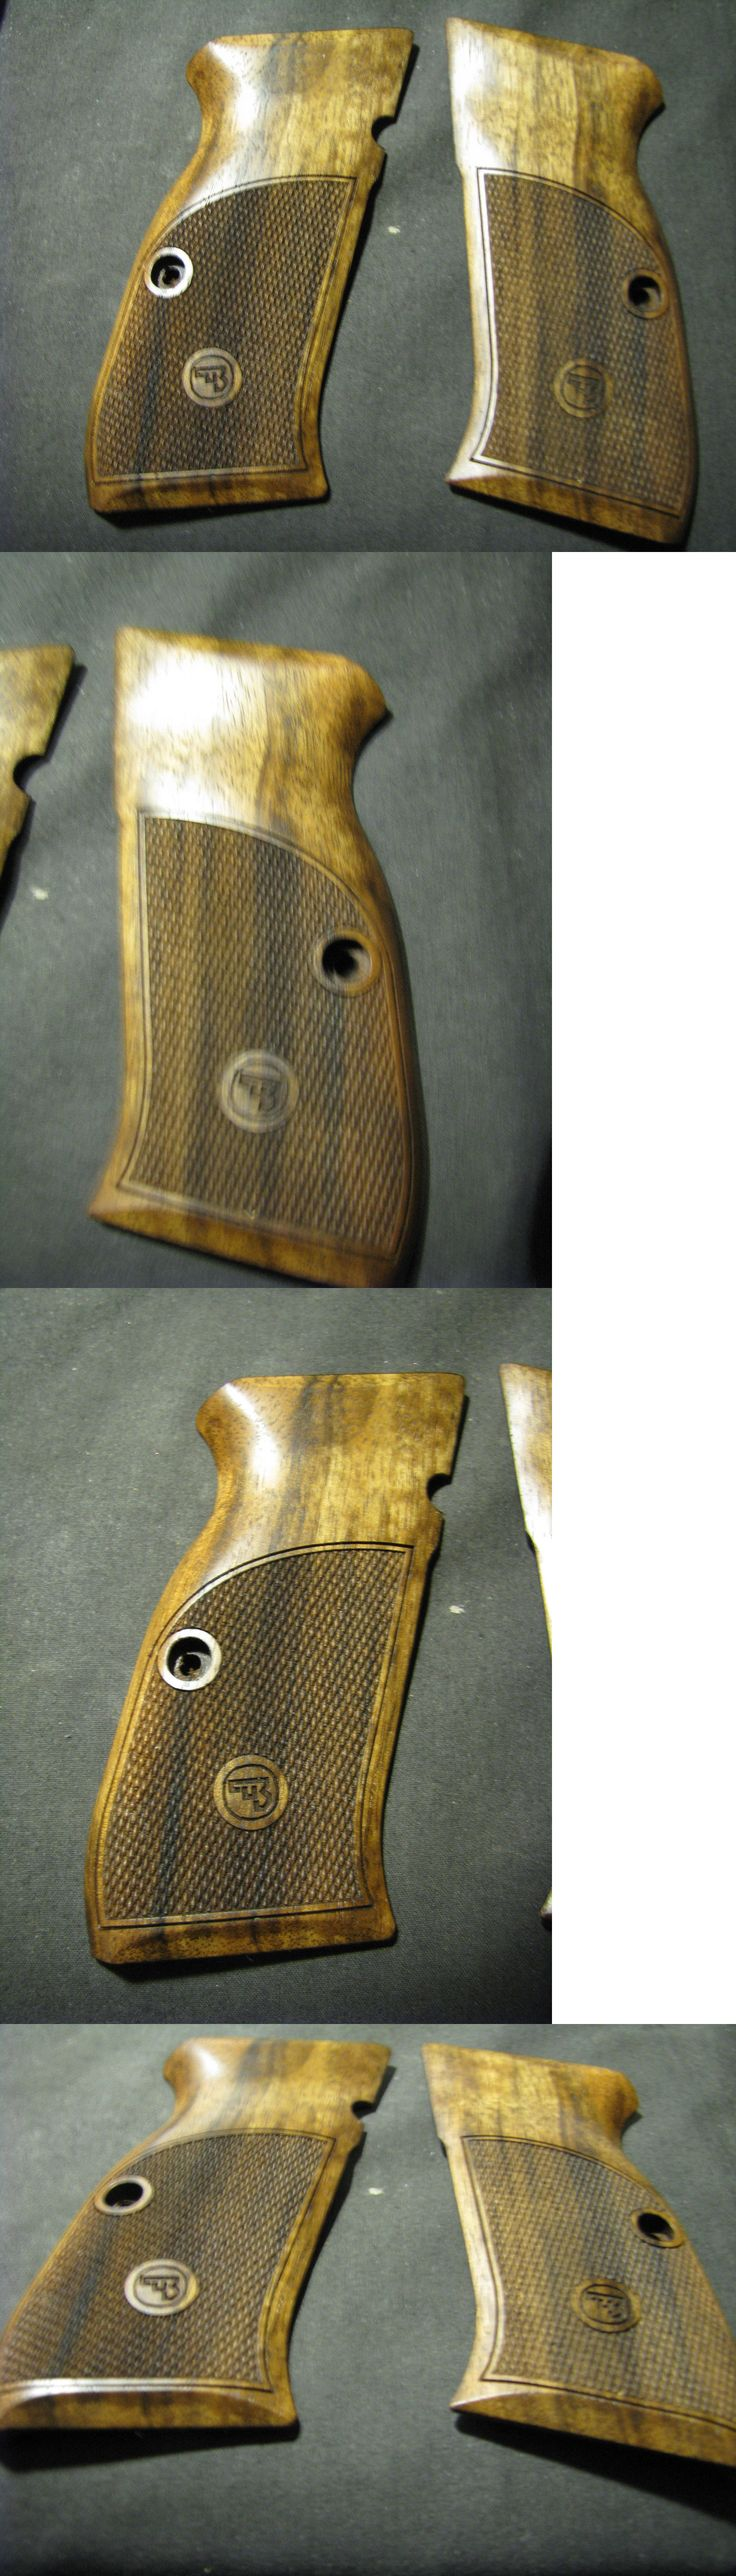 Other Hunting Accessories 52509: Cz-97 Cz-97 Fine English Walnut Checkered Pistol Grips W/Logo Beauty! New Grip! -> BUY IT NOW ONLY: $89.95 on eBay!